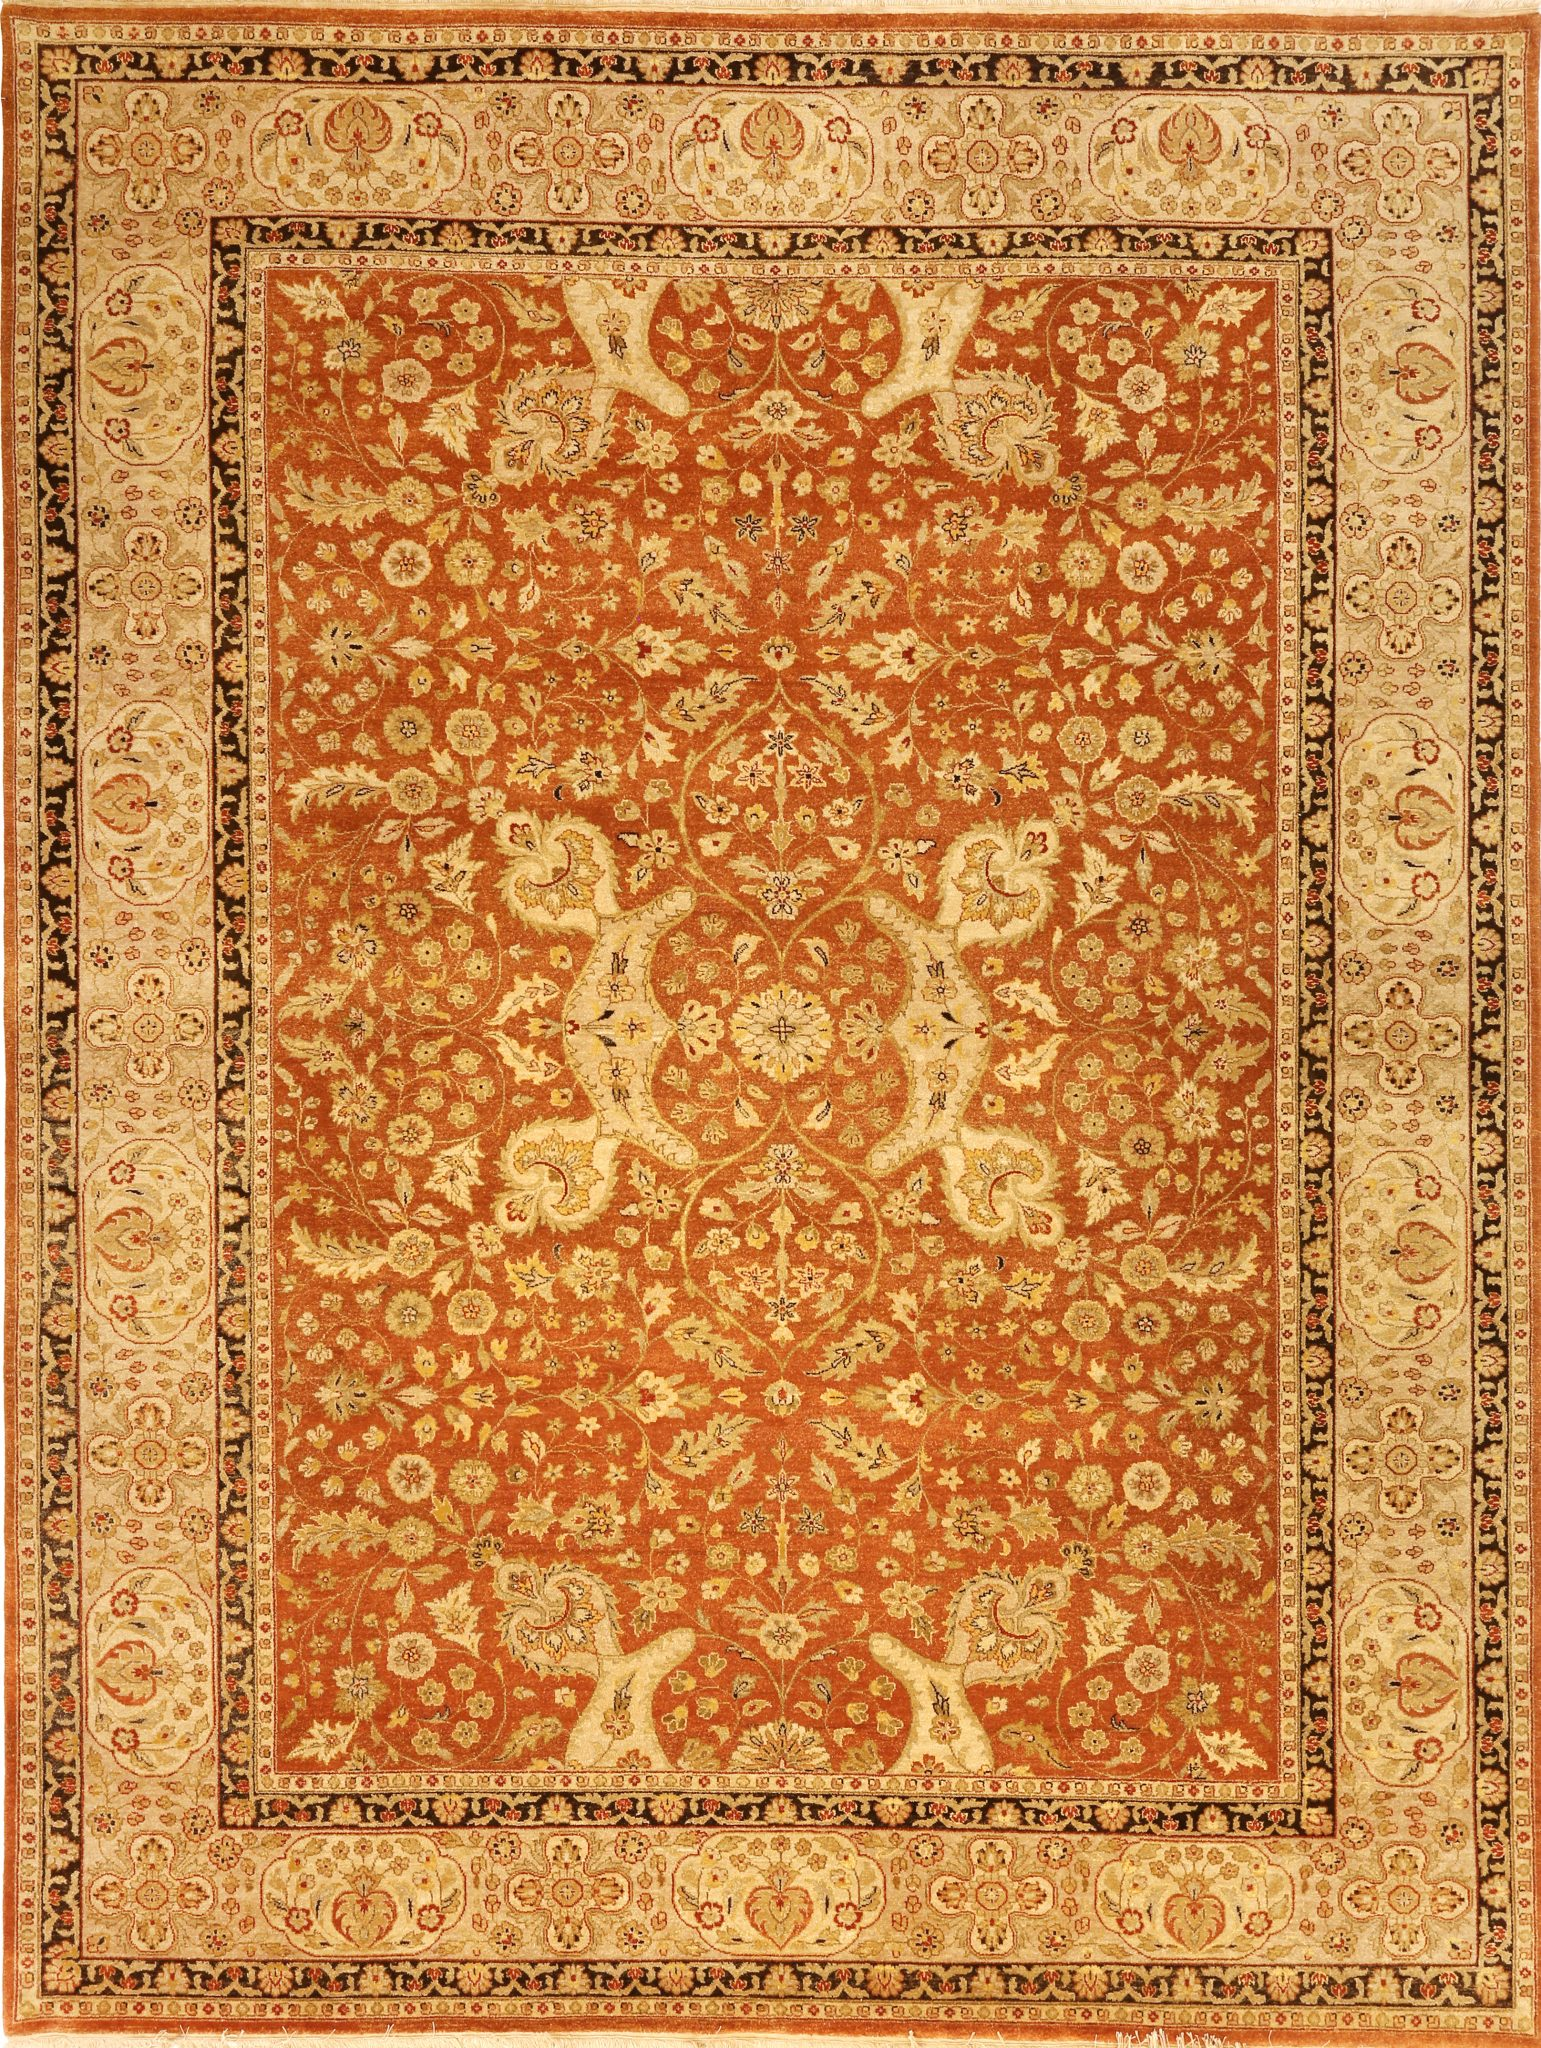 107081 – Traditional Hand-woven Indian Agra Rug 9.0 x 12.0